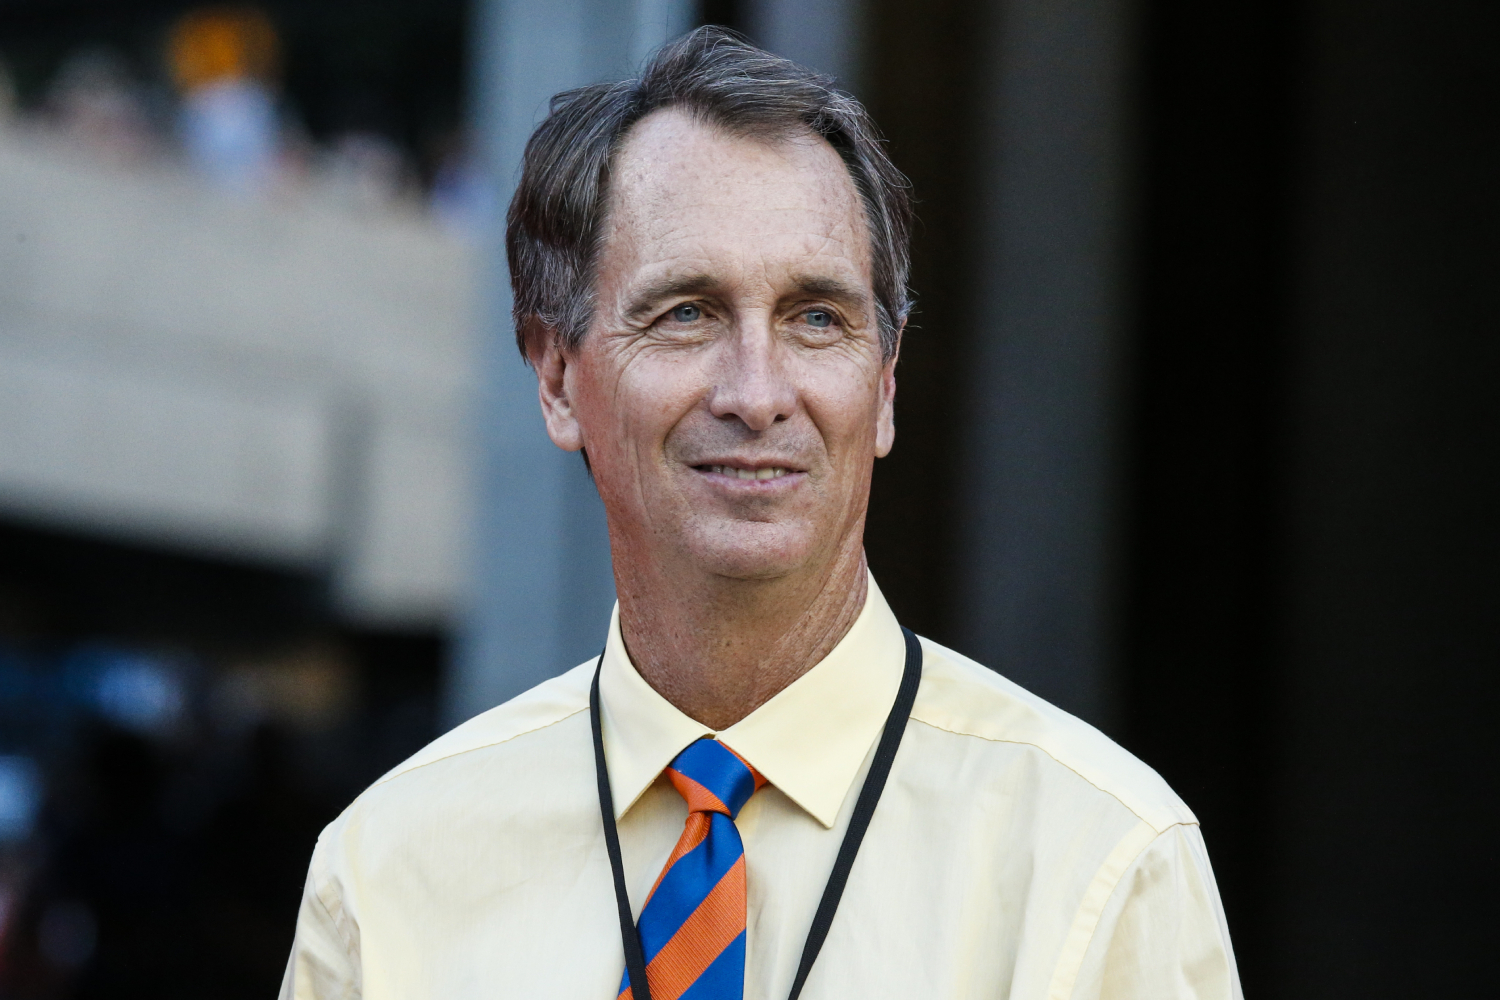 Cris Collinsworth Recently Made Some Bold Comments About His Former Team